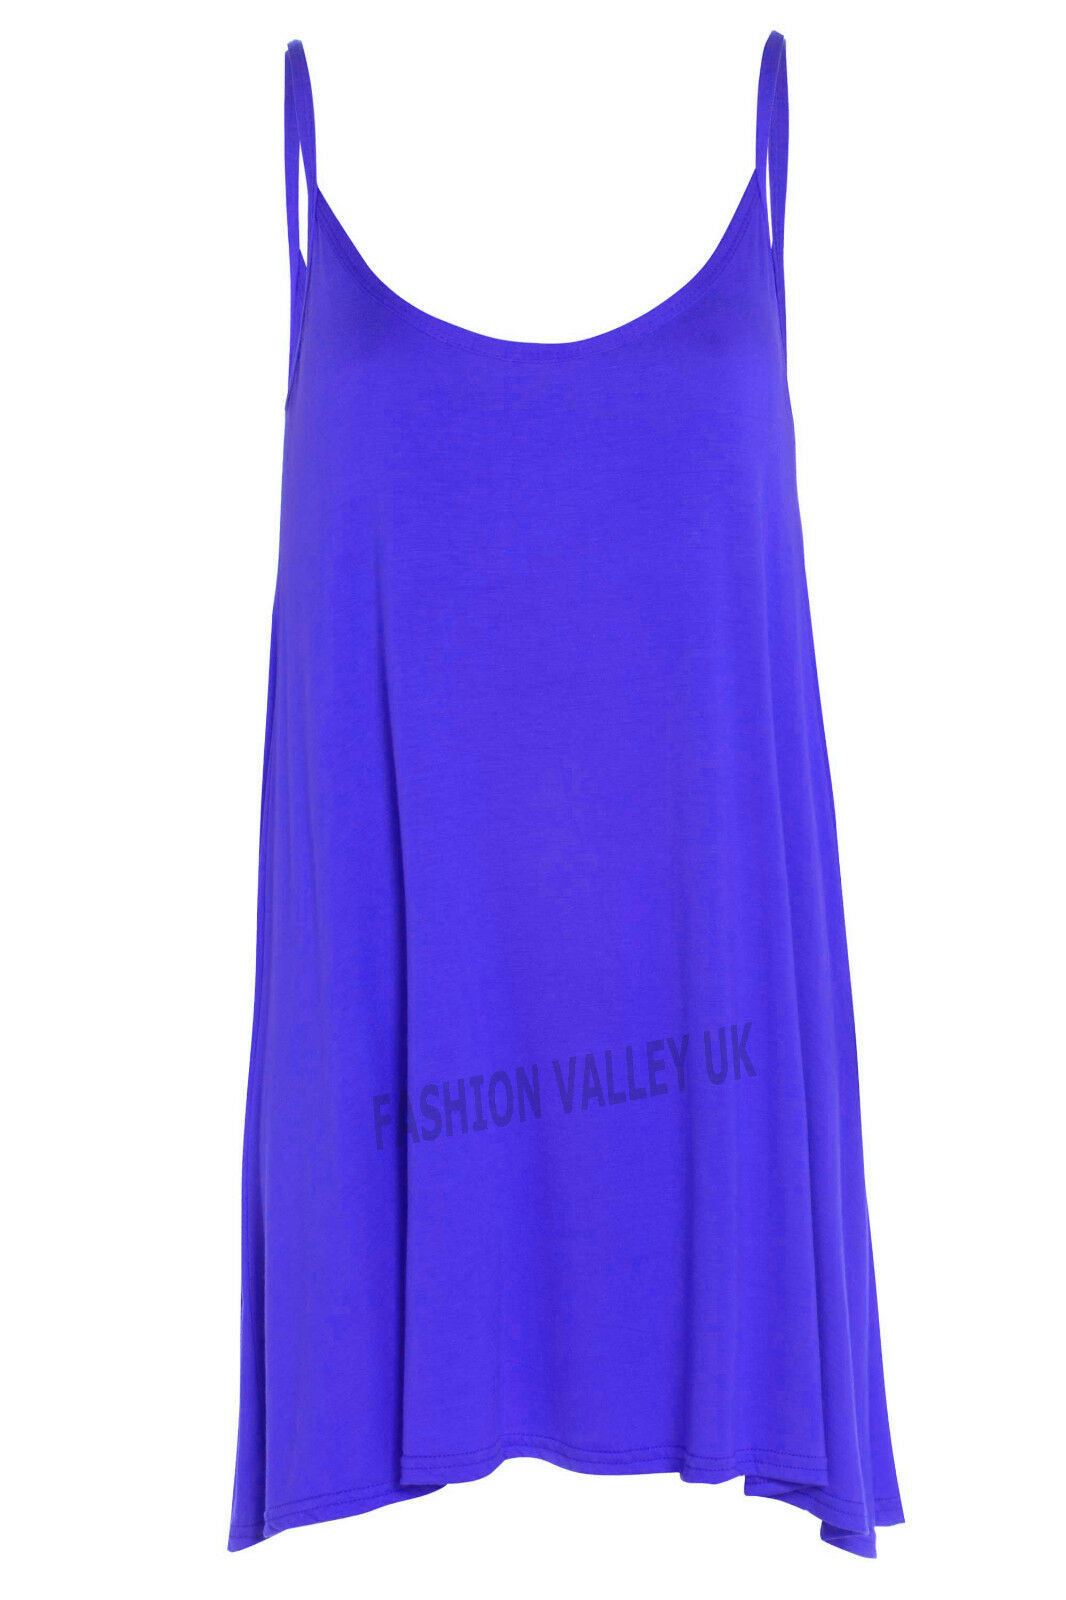 New Womens Strappy Camisole Cami FlaRouge Skater Strappy Womens Swing Mini Dress Top 8-22 b1d5c3